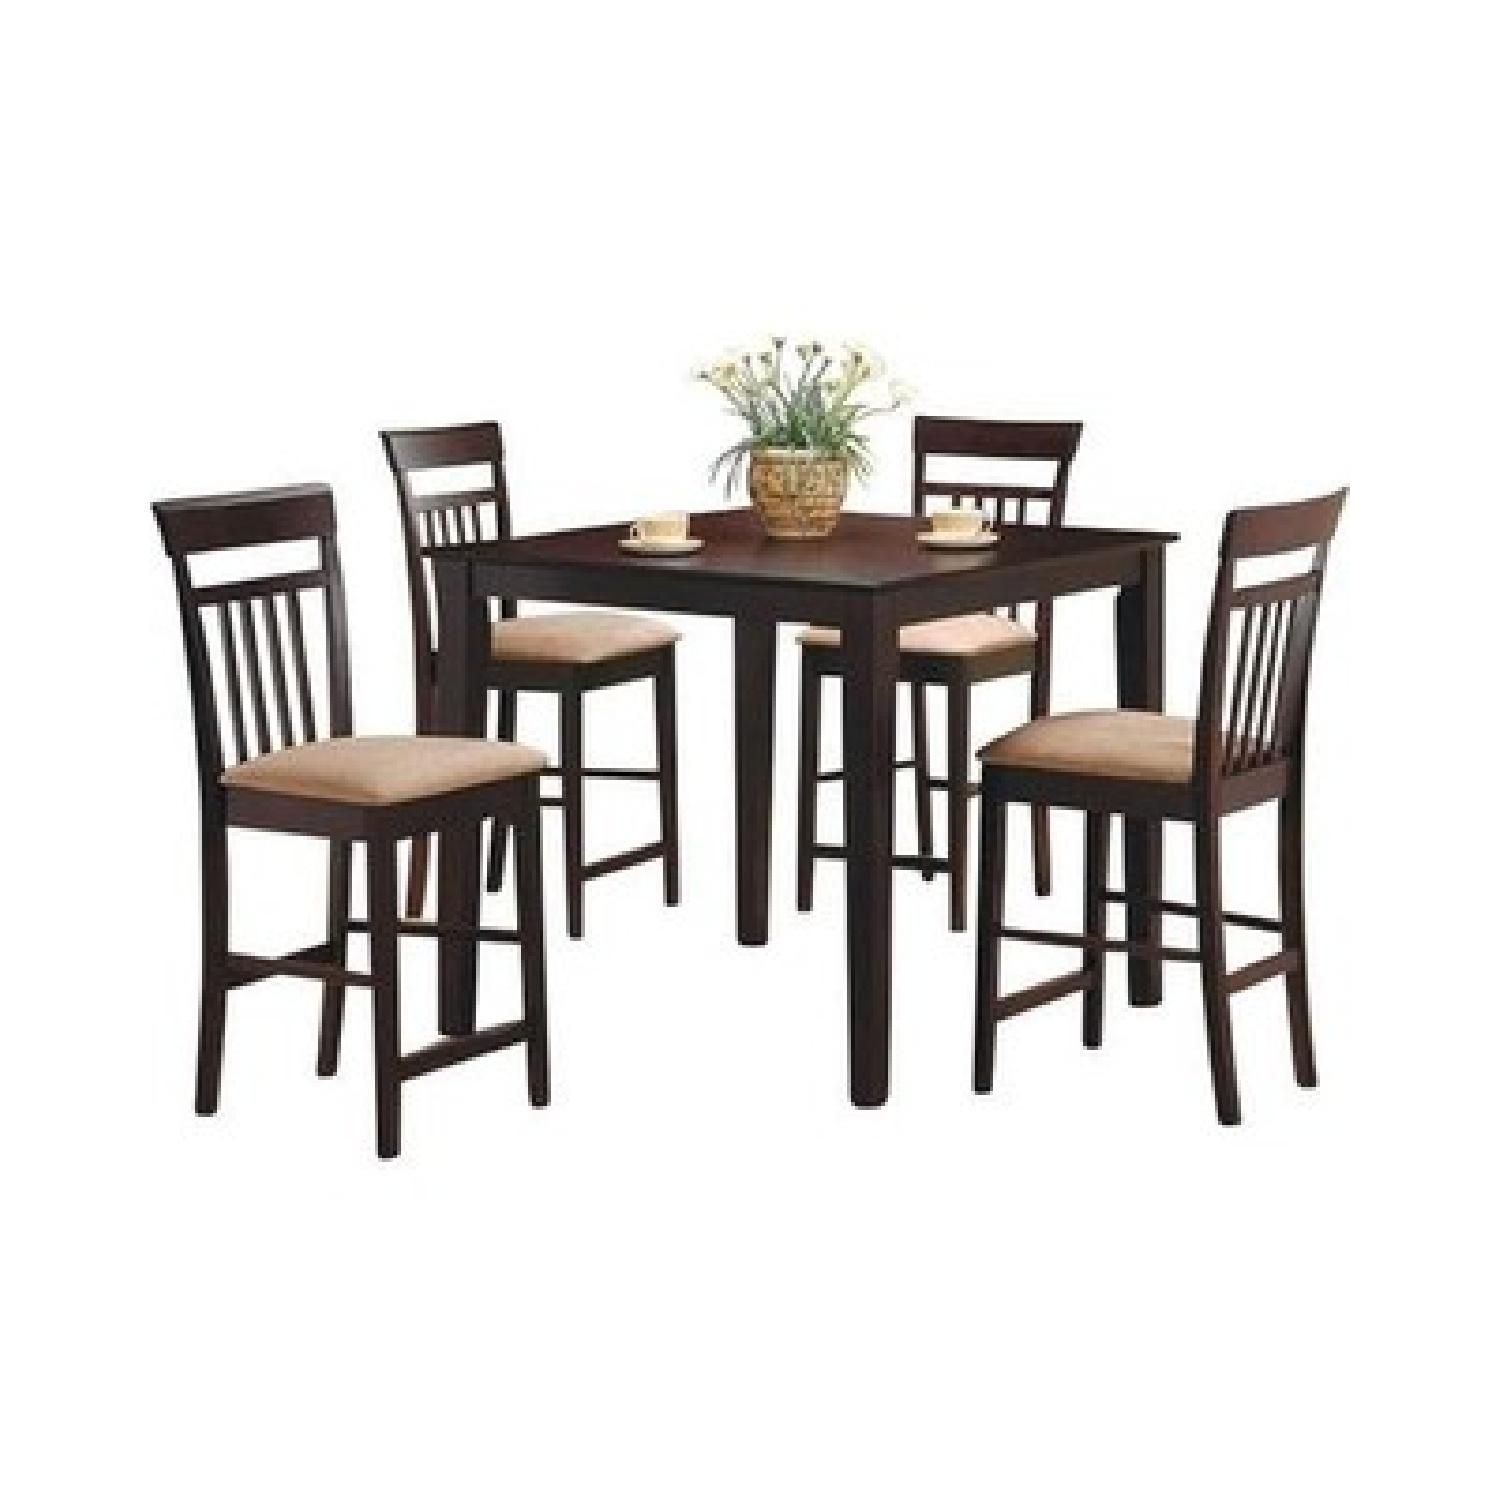 Coaster 5 Piece Counter Height Dining Set In Cappuccino ...